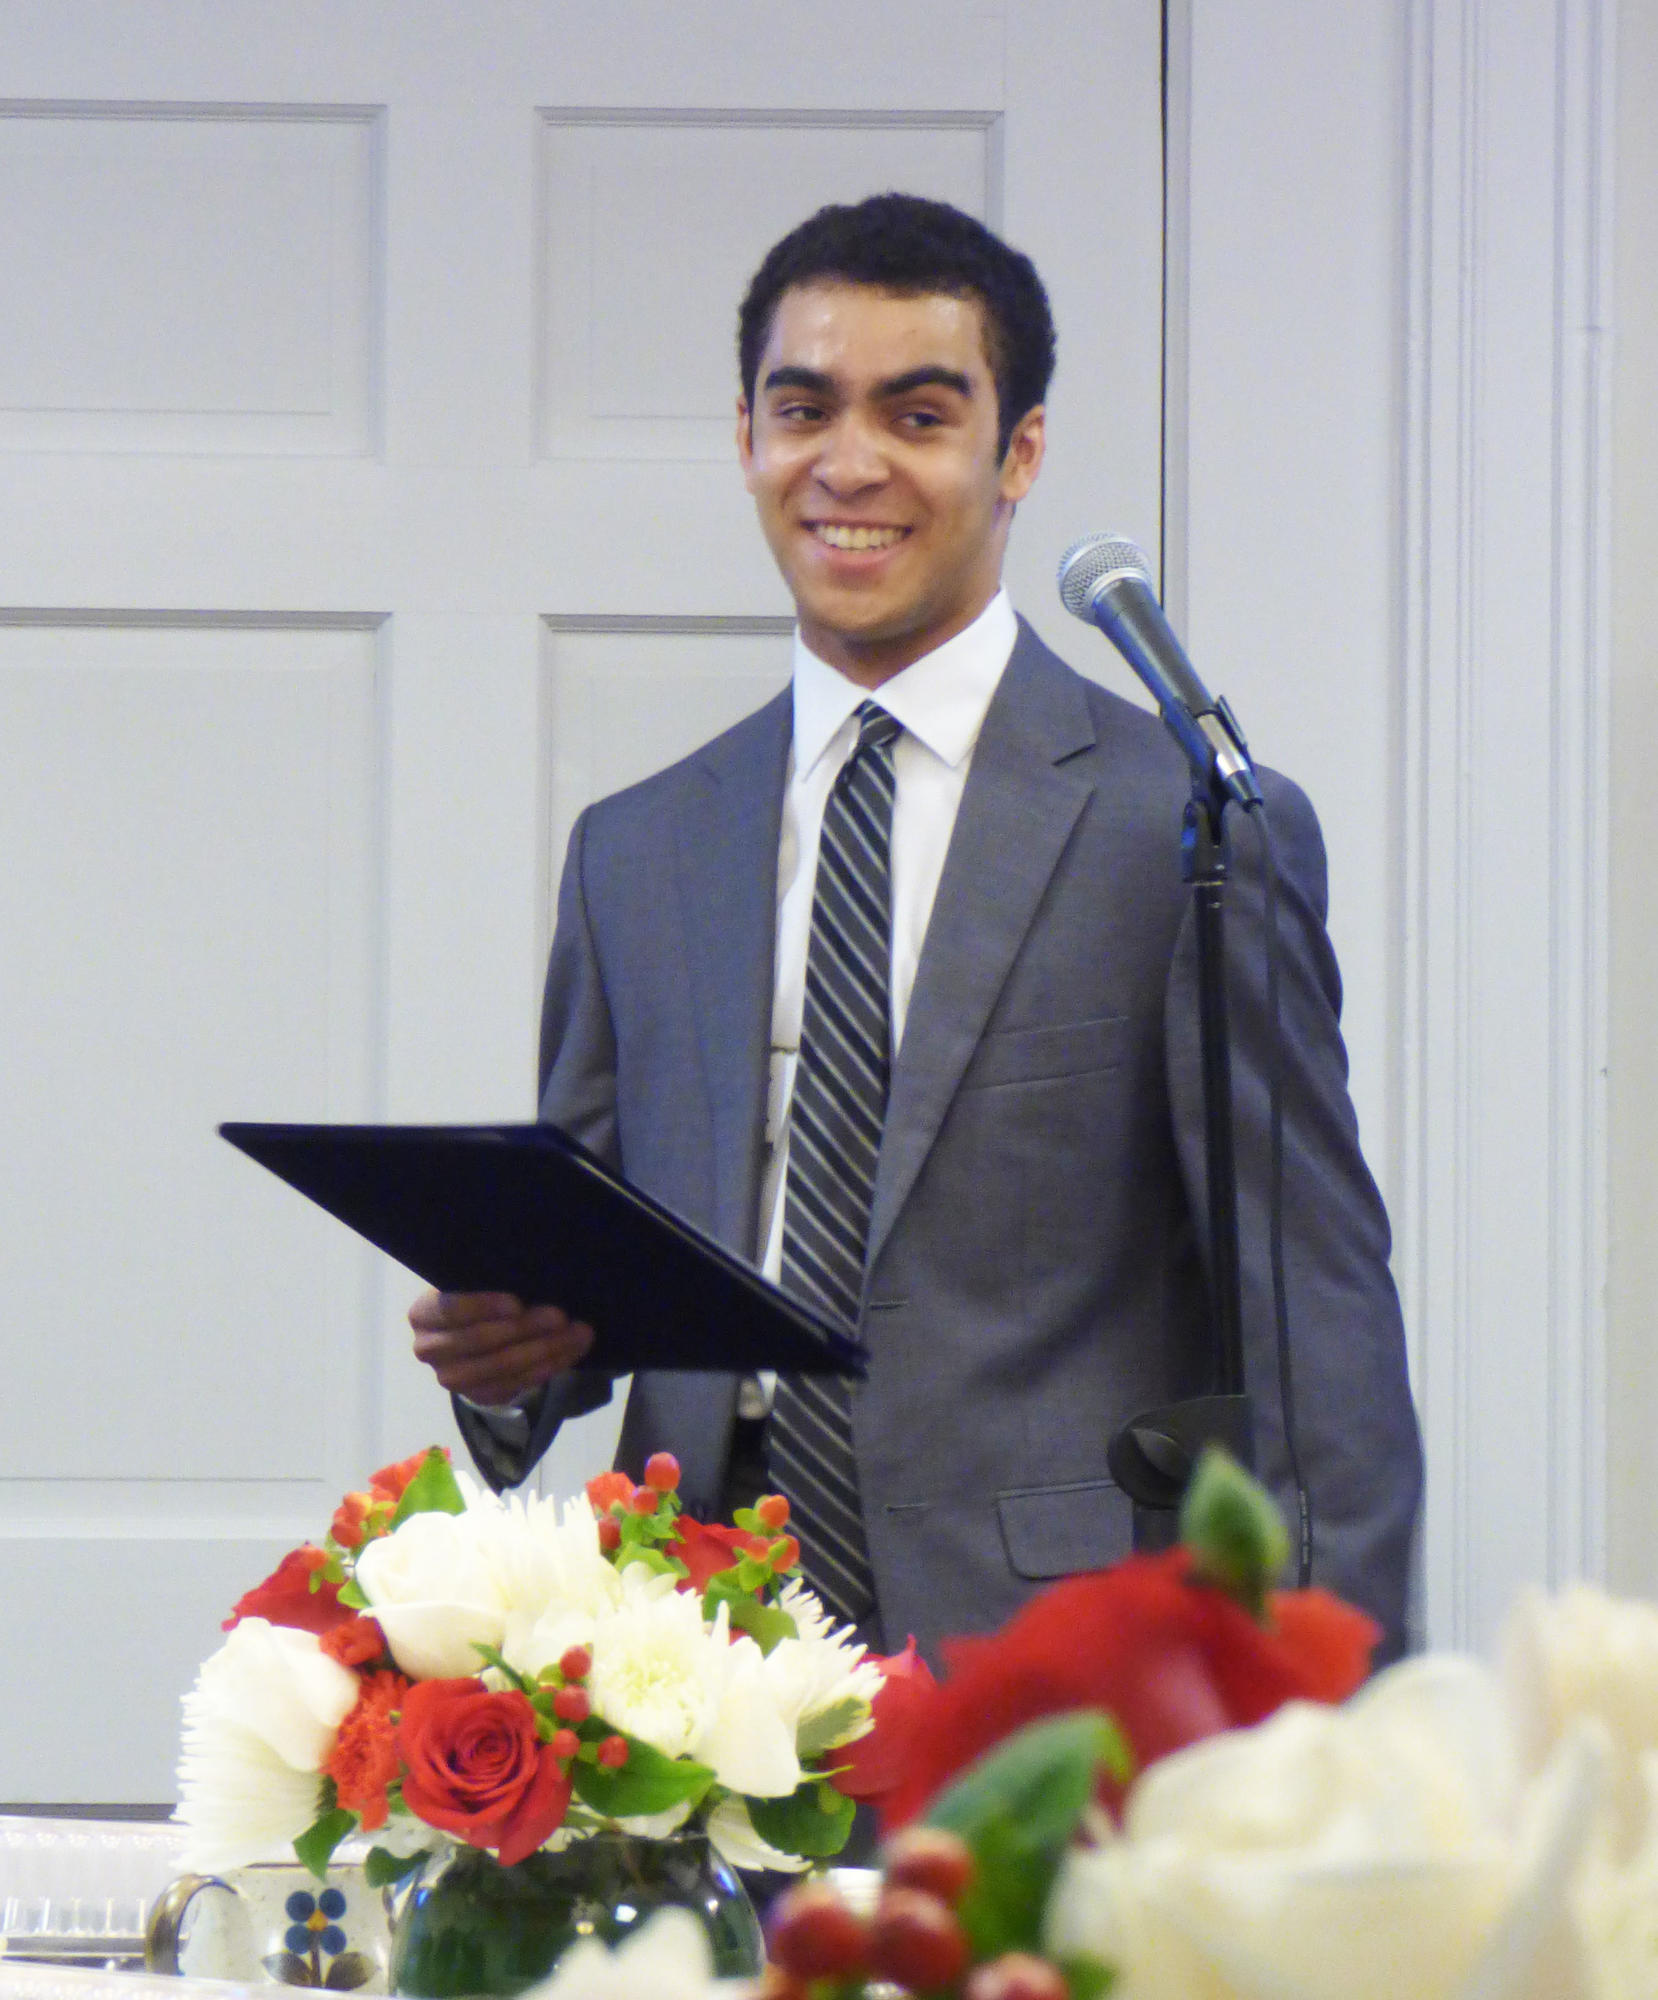 Devon, wearing a dark-colored suit, smiles as he stands in front of the microphone.